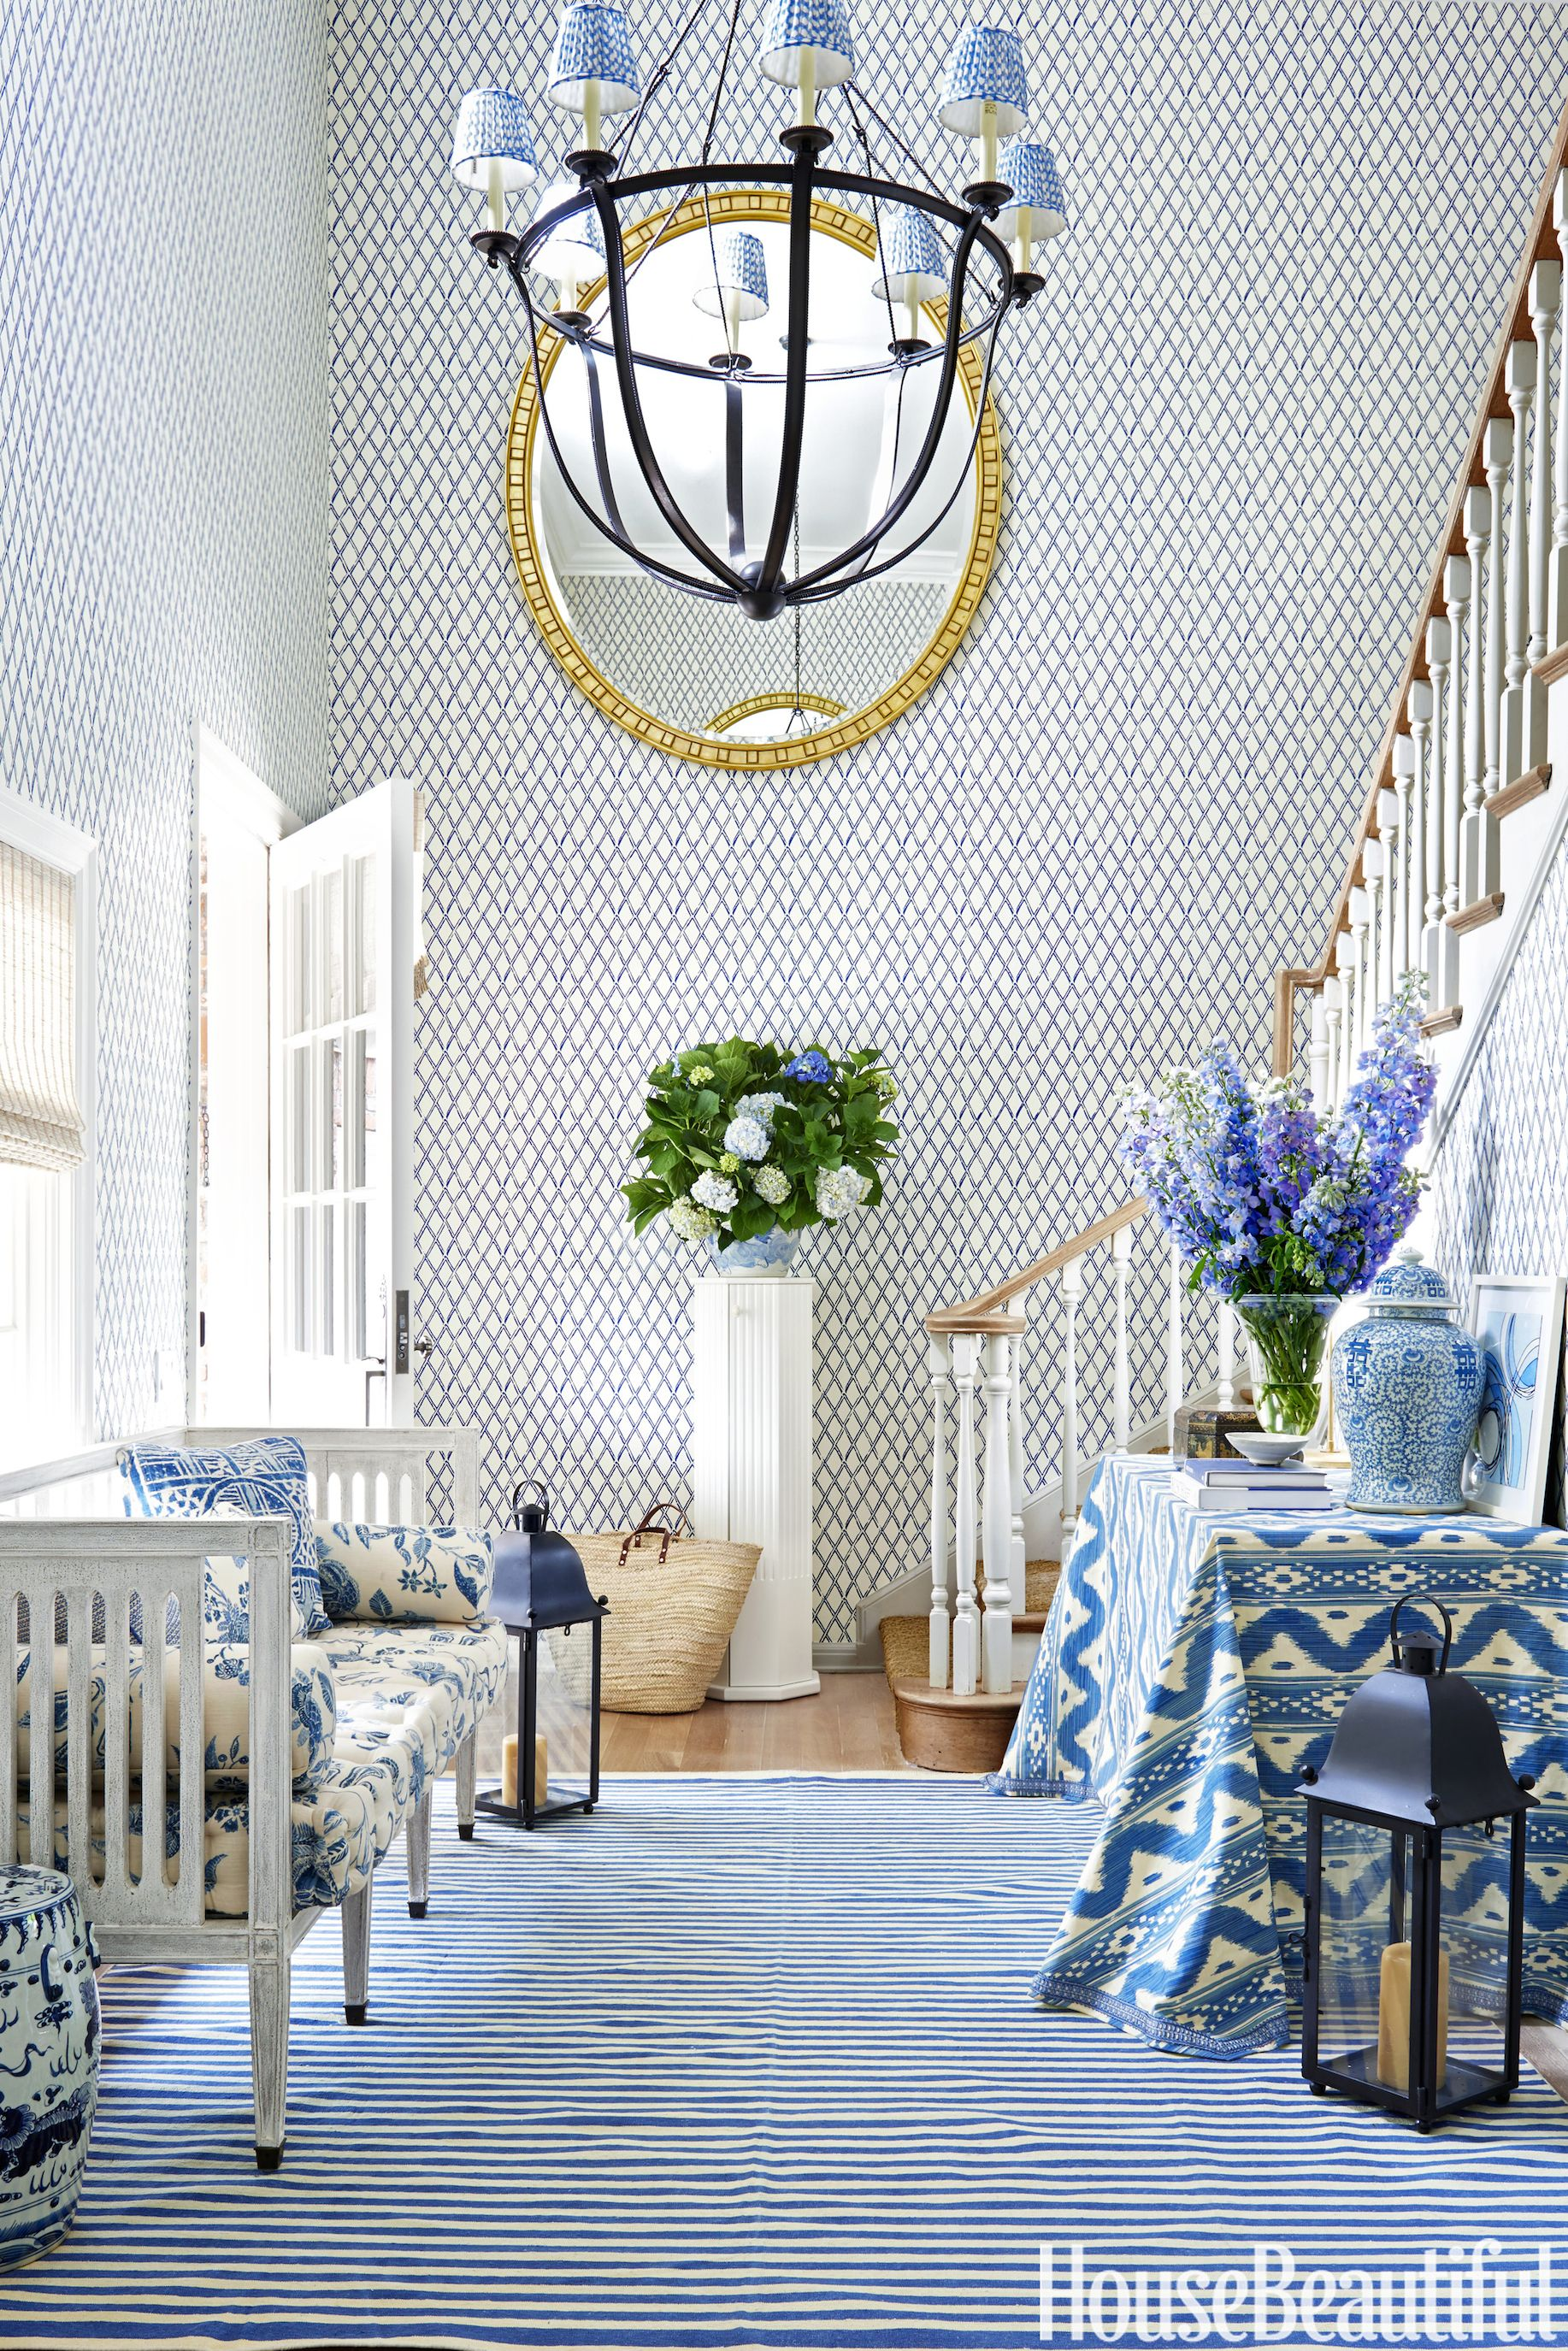 75 Foyer Decorating Ideas Design of Foyers House